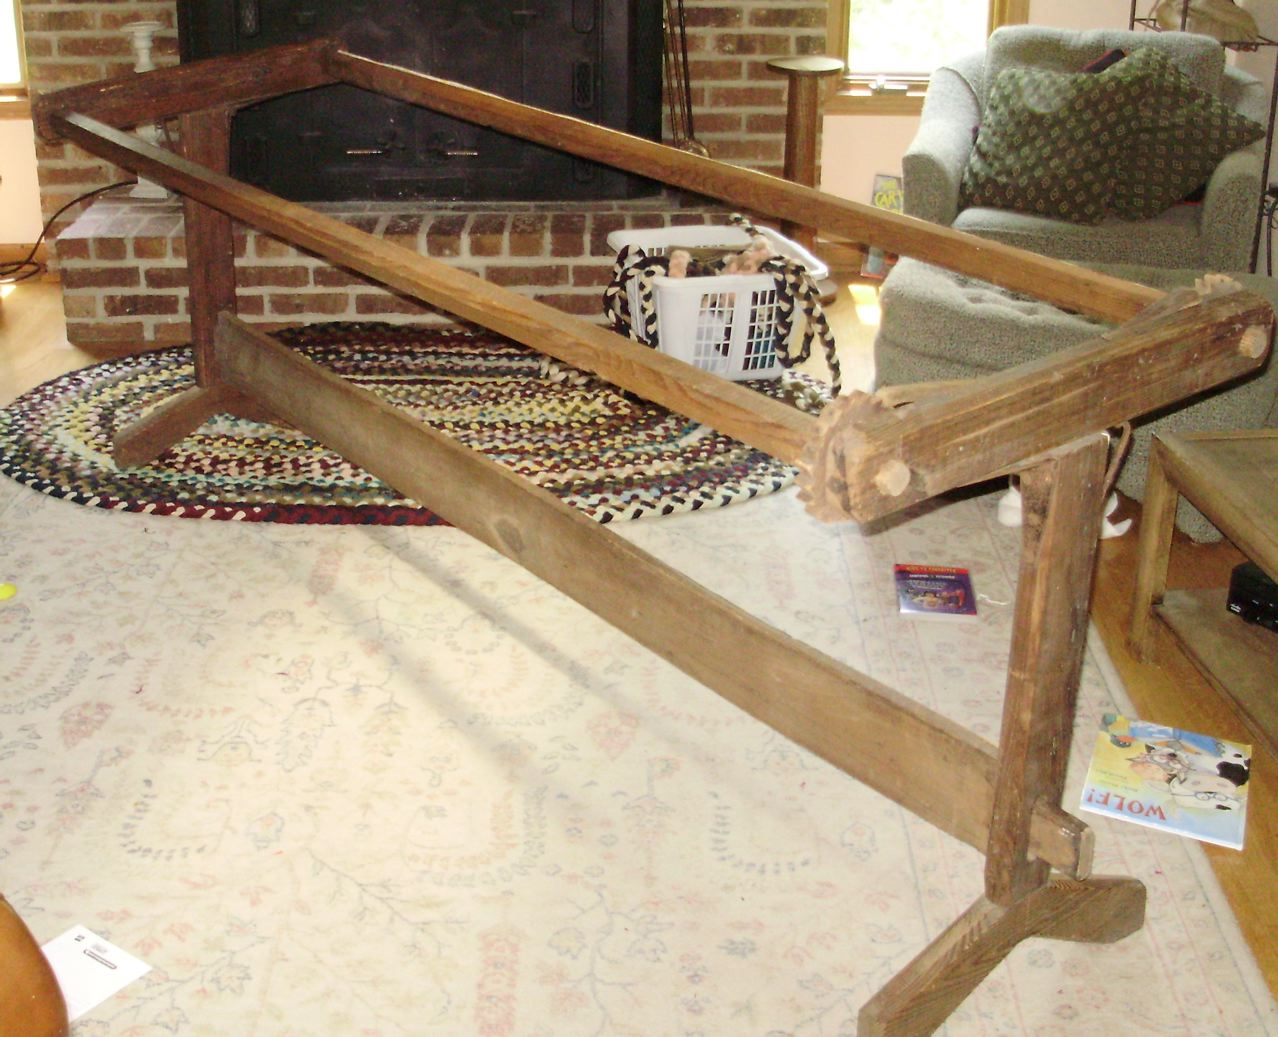 Life of a Domestic Disaster: Antique Quilt Frame